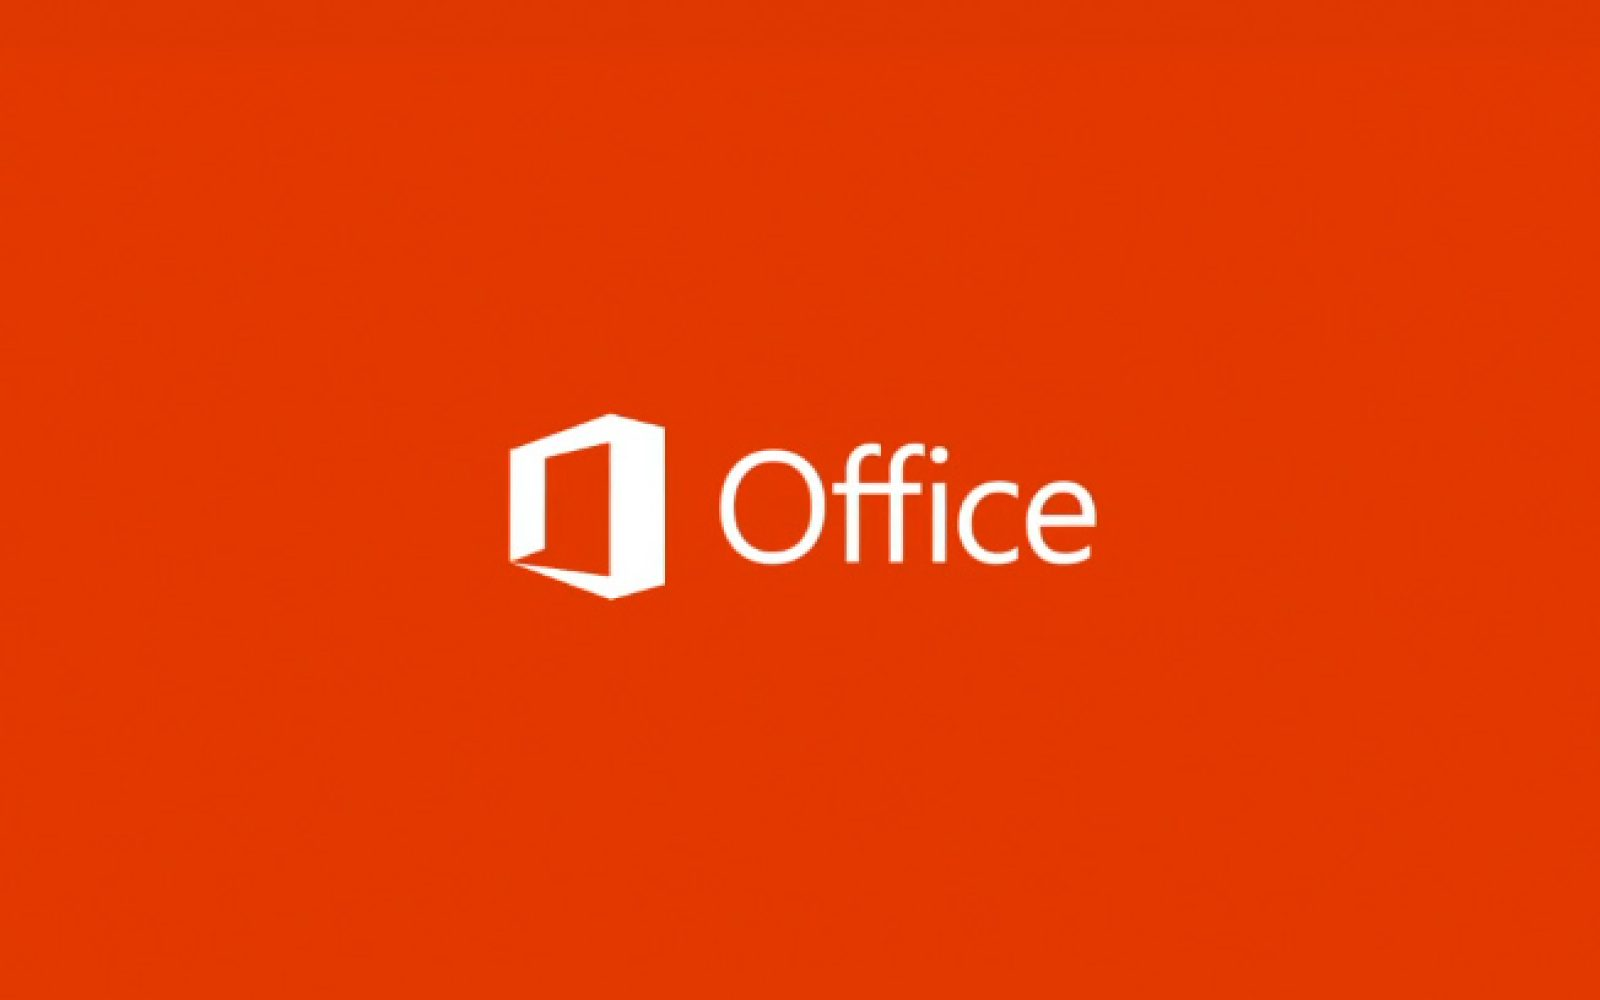 Microsoft restructures Office for Mac 2011 pricing starting